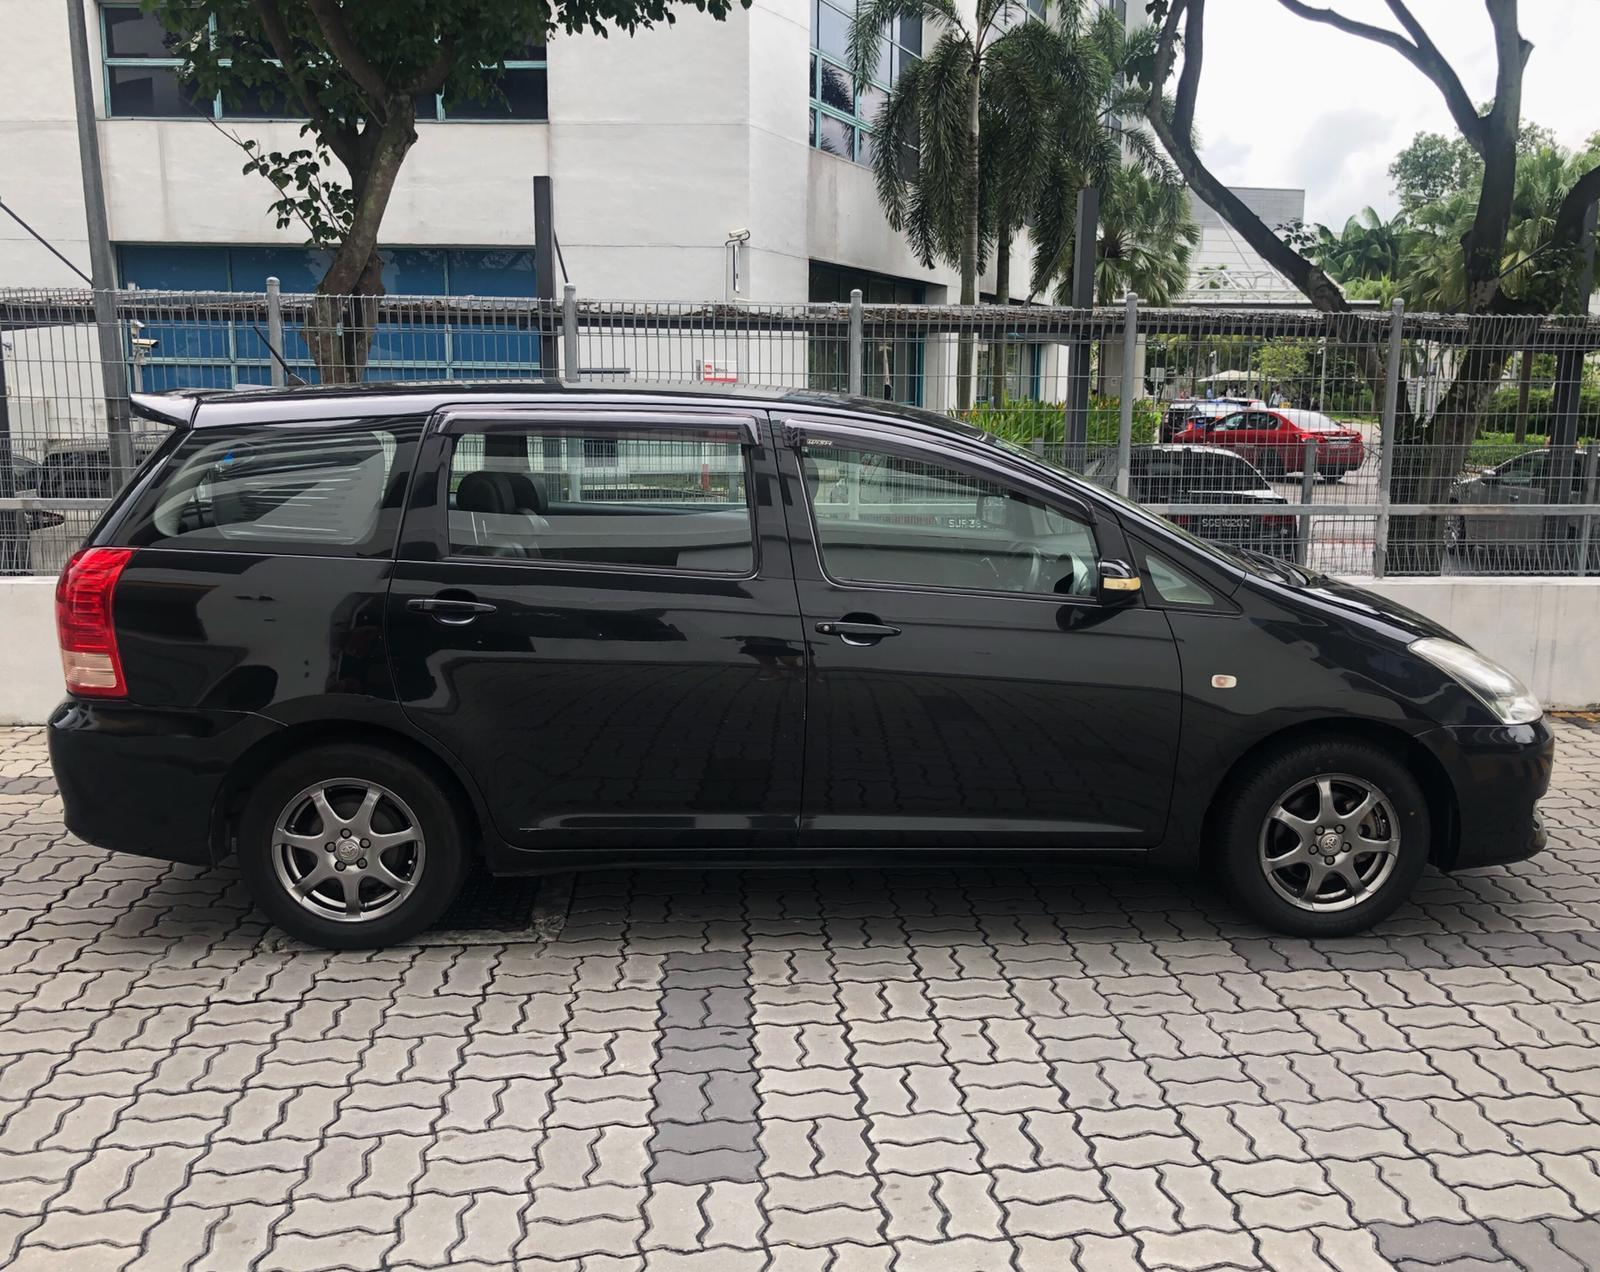 Toyota Wish 1.8 CHEAPEST Car Rental for Grab Gojek Ryde Personal use